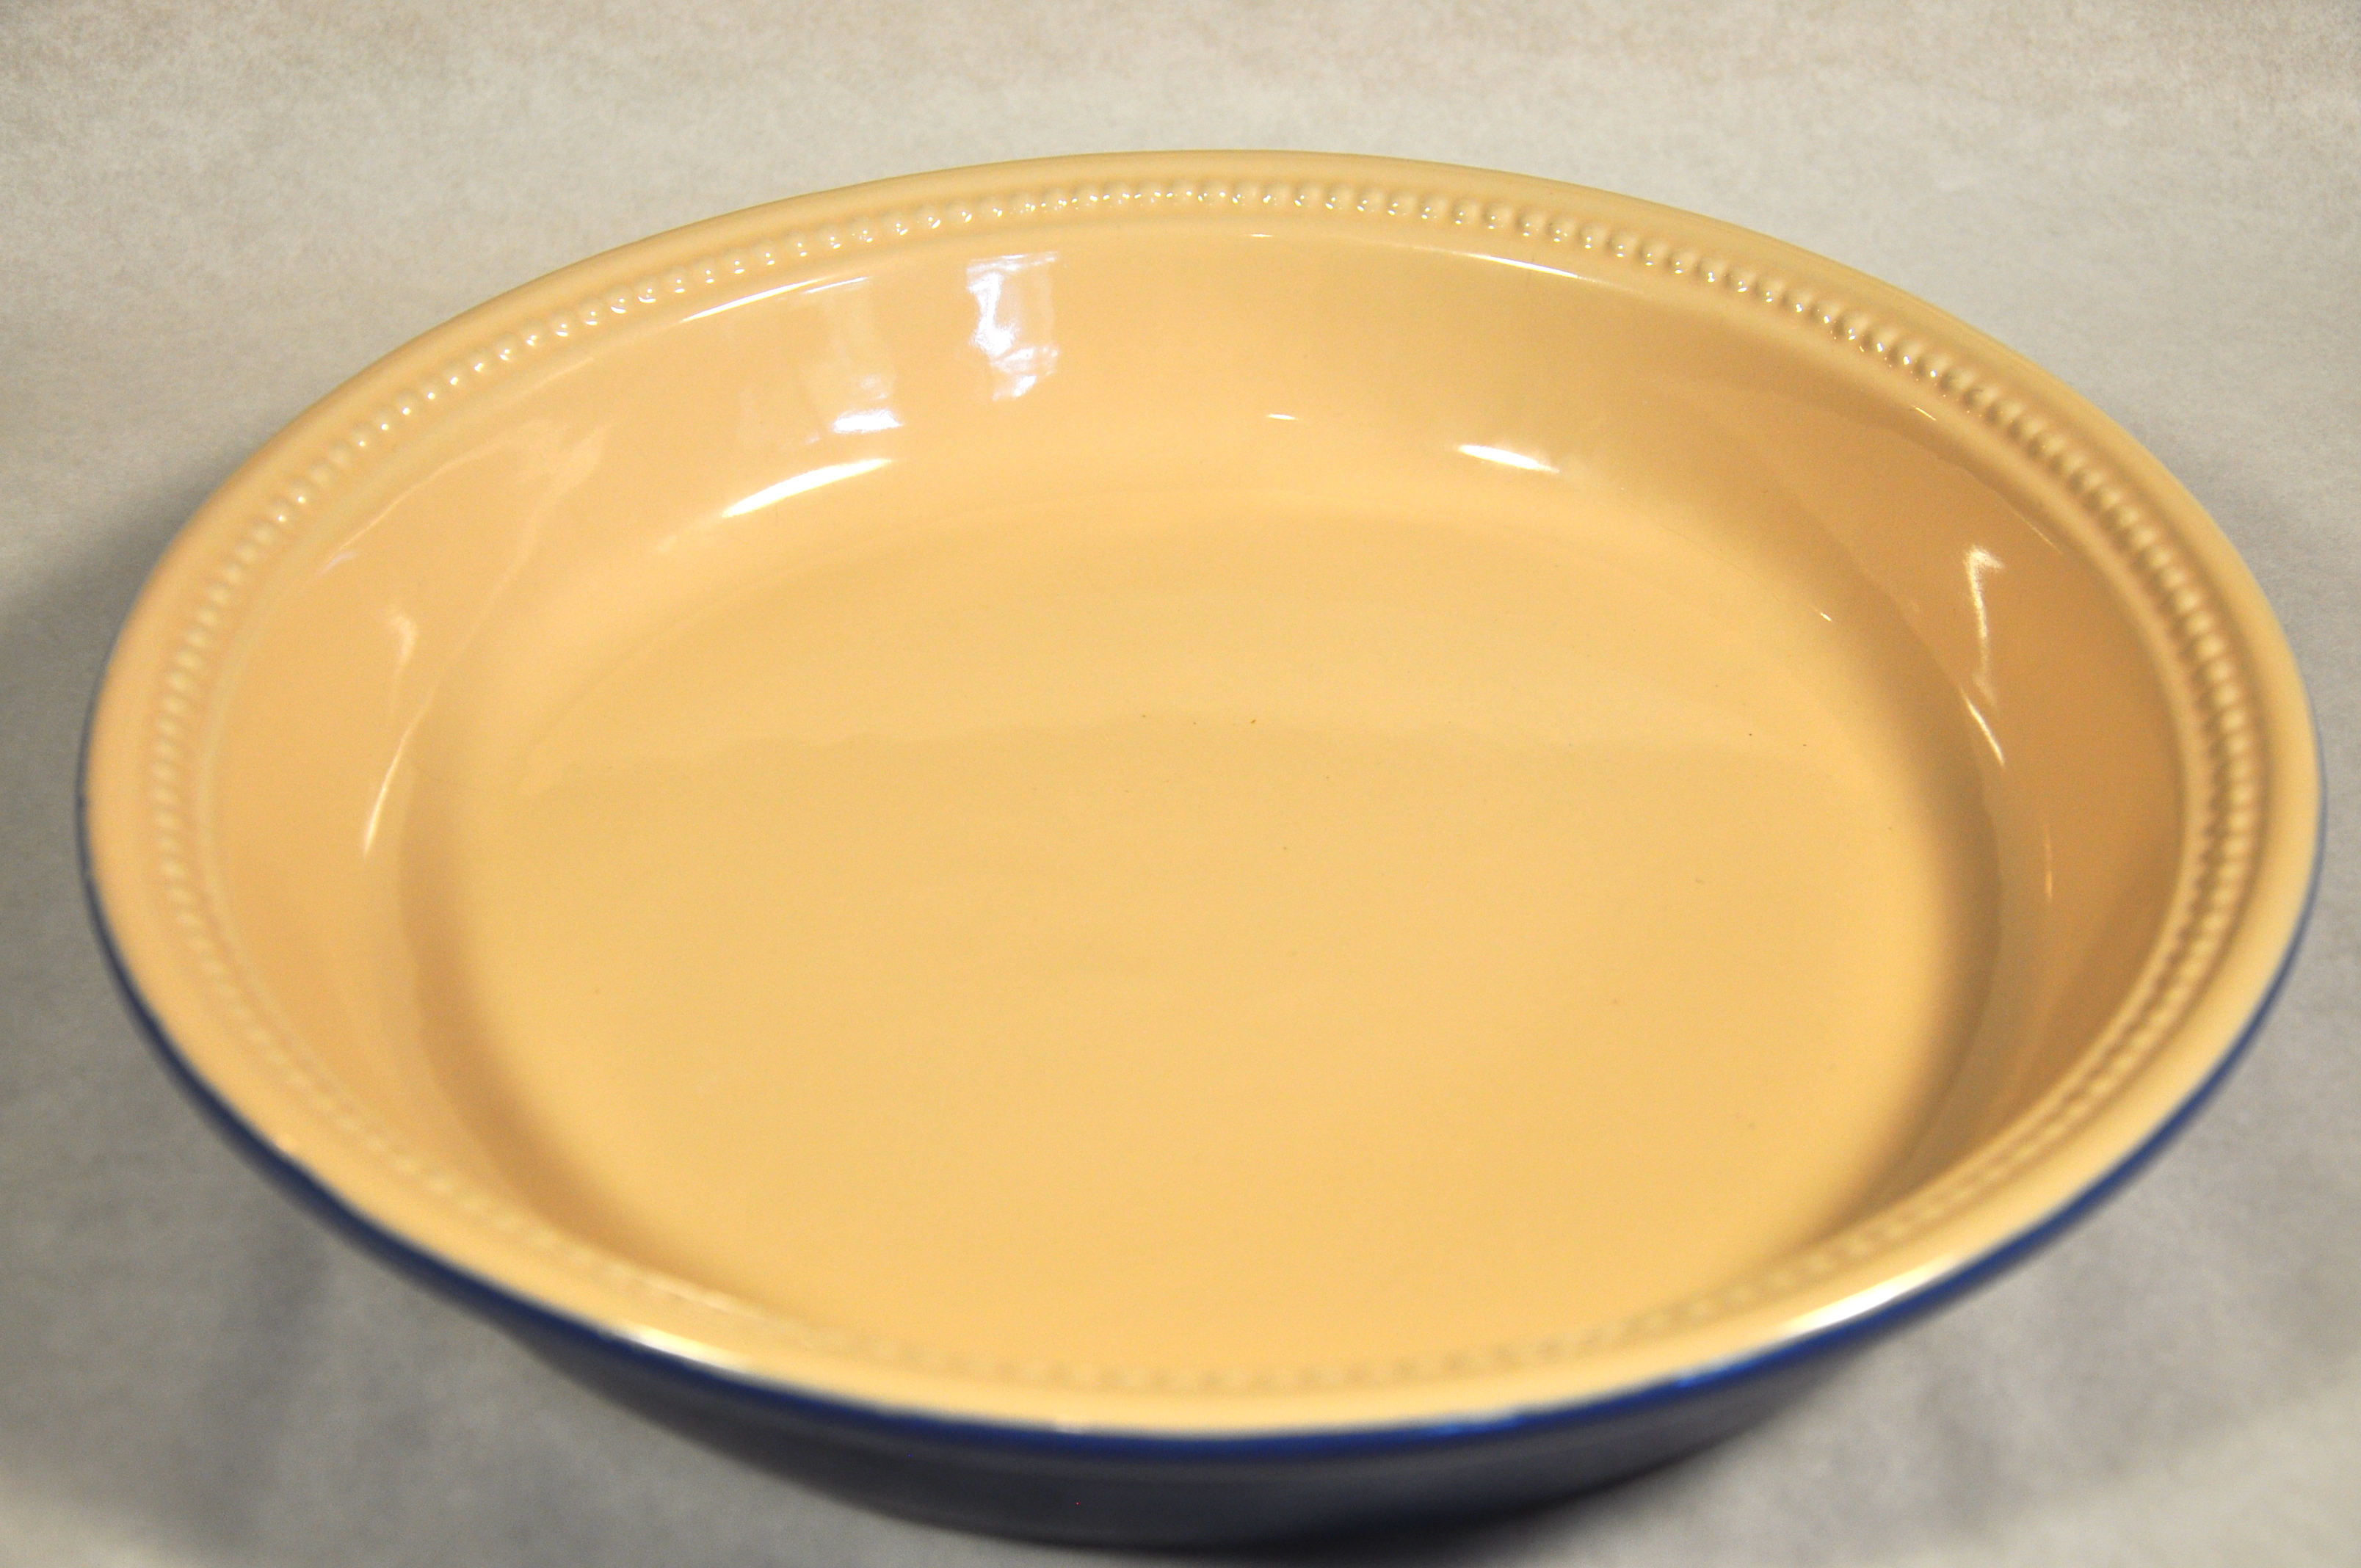 CURRENT INVENTORY & Private Le Creuset Stoneware offering at The Pie Academy